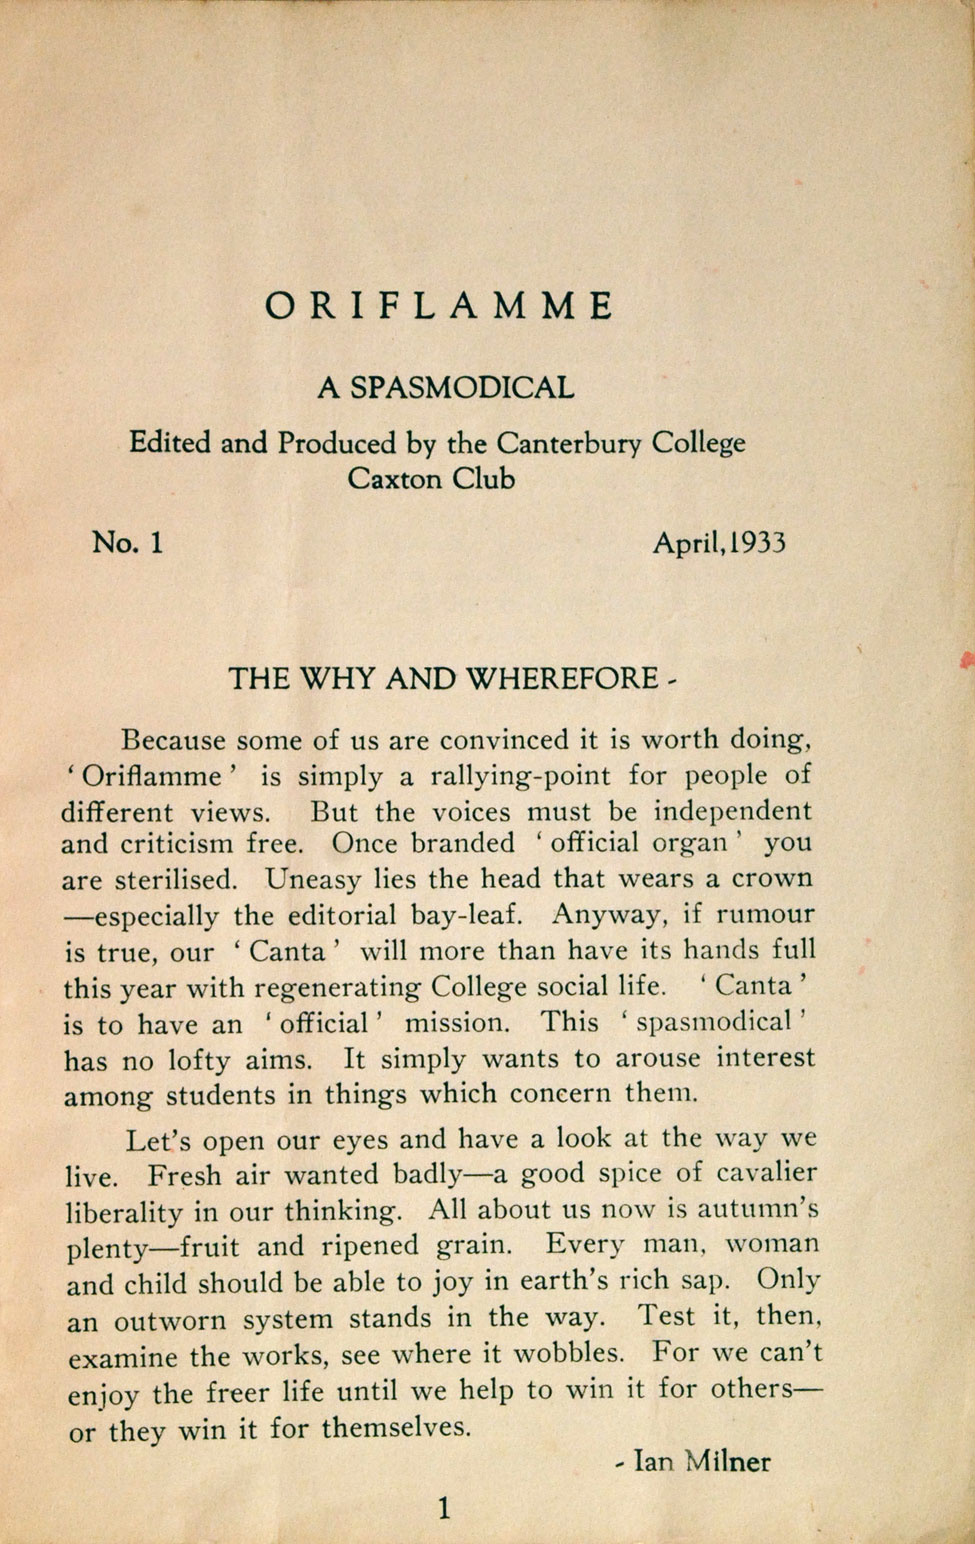 Oriflamme: A Spasmodical. <i>Christchurch: The Caxton Club Press, April 1933.</i>